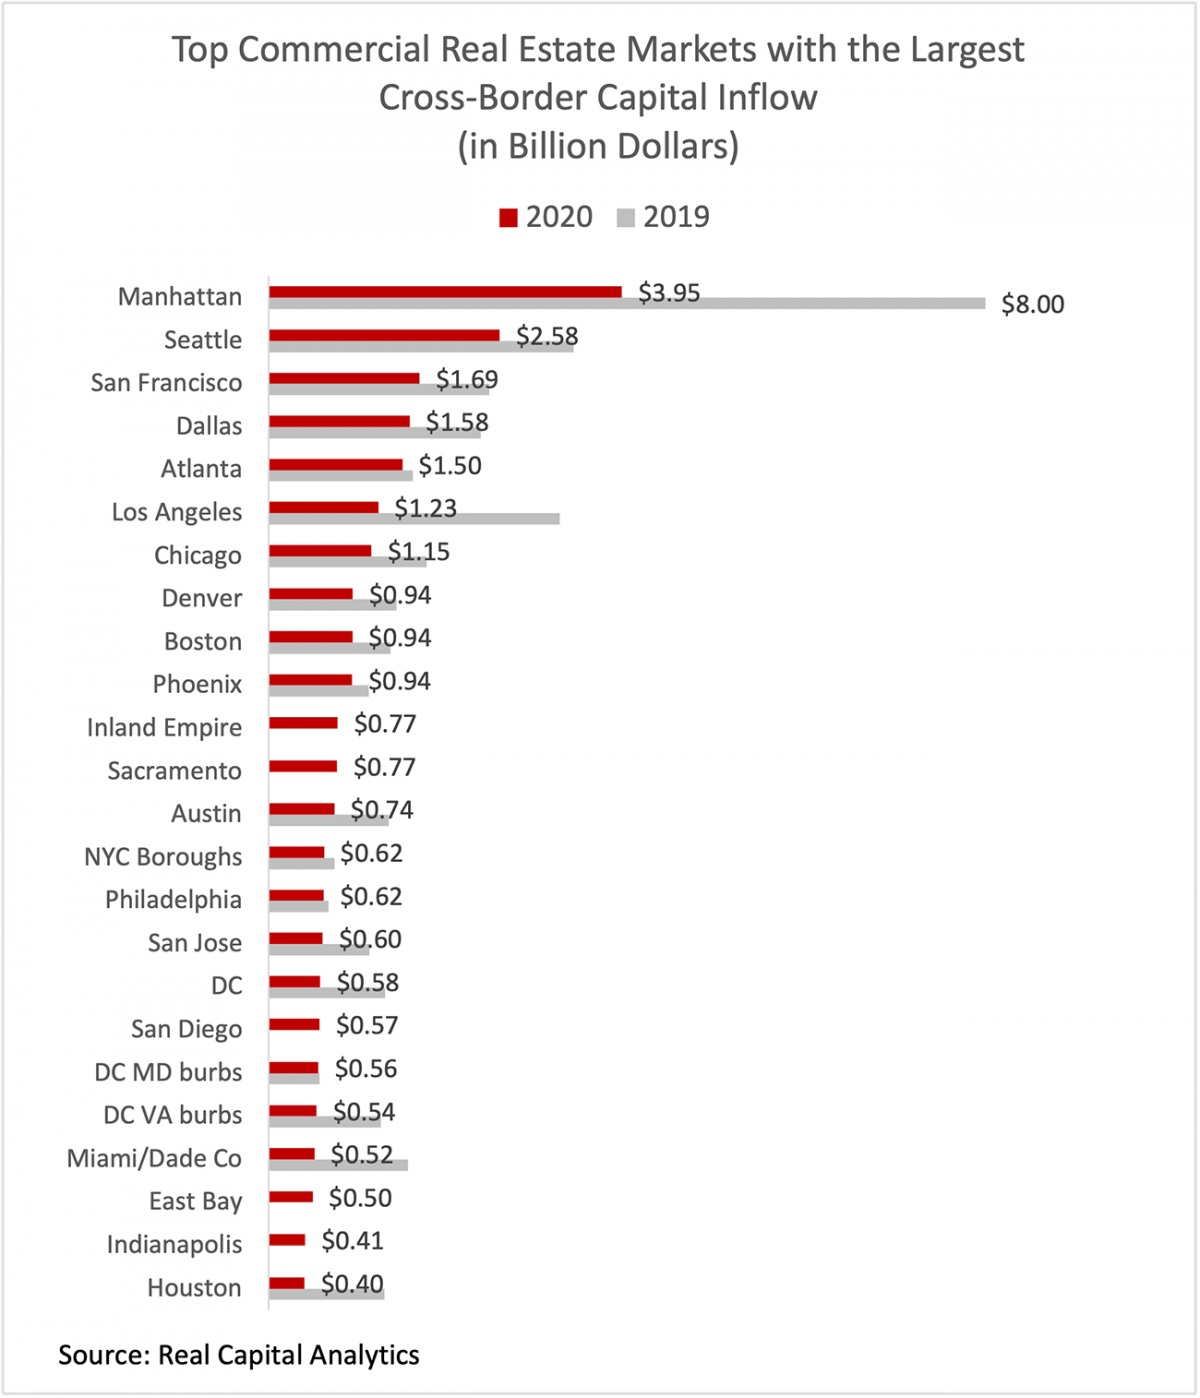 Bar chart: Top Commercial Real Estate Markets With the Largest Cross-Capital Inflow, 2020 and 2019